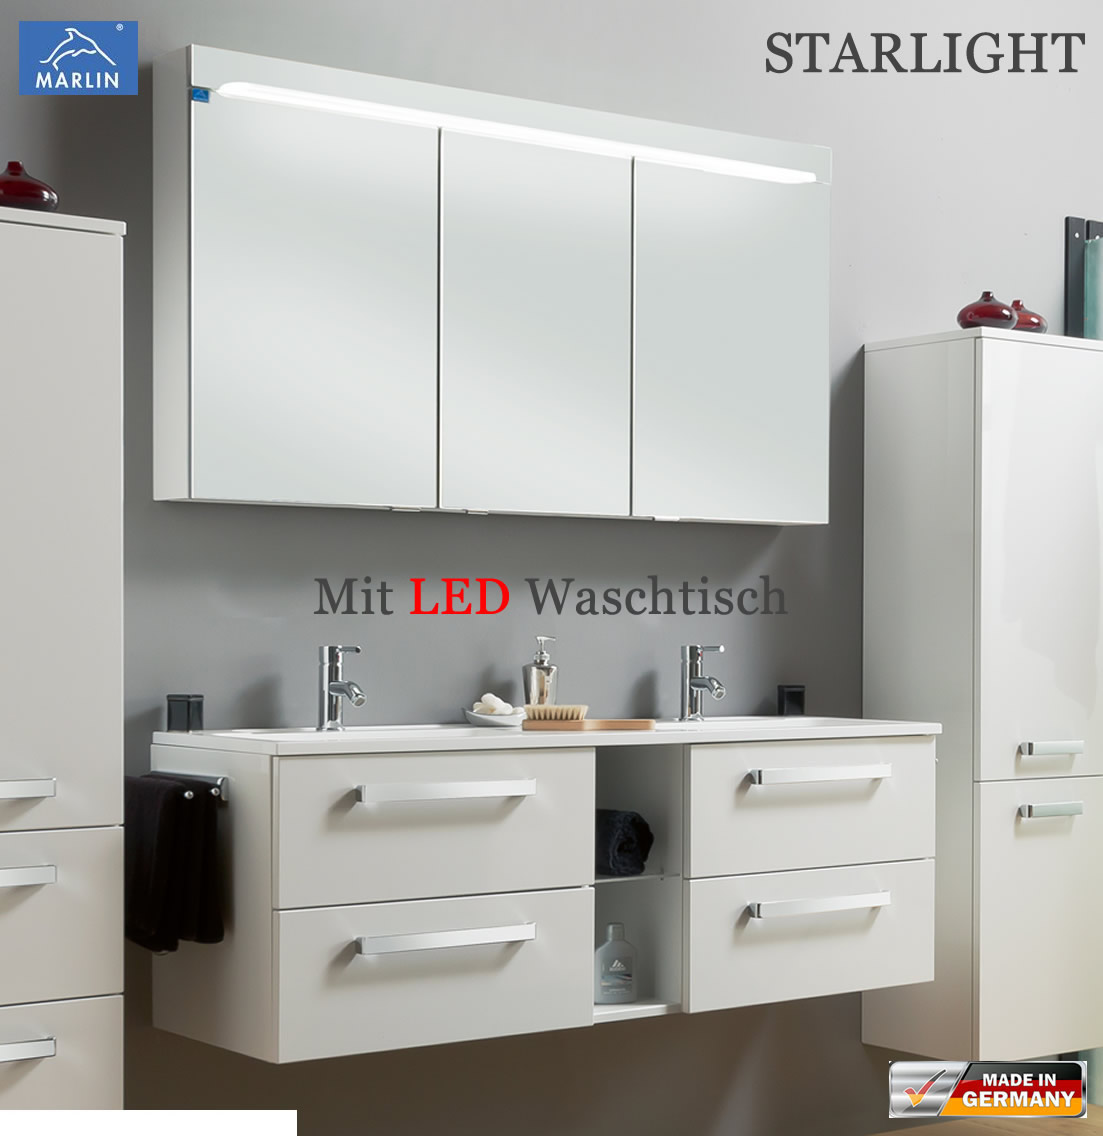 marlin starlight badm bel set 140 cm mit led doppelwaschtisch v4 2 impuls home. Black Bedroom Furniture Sets. Home Design Ideas